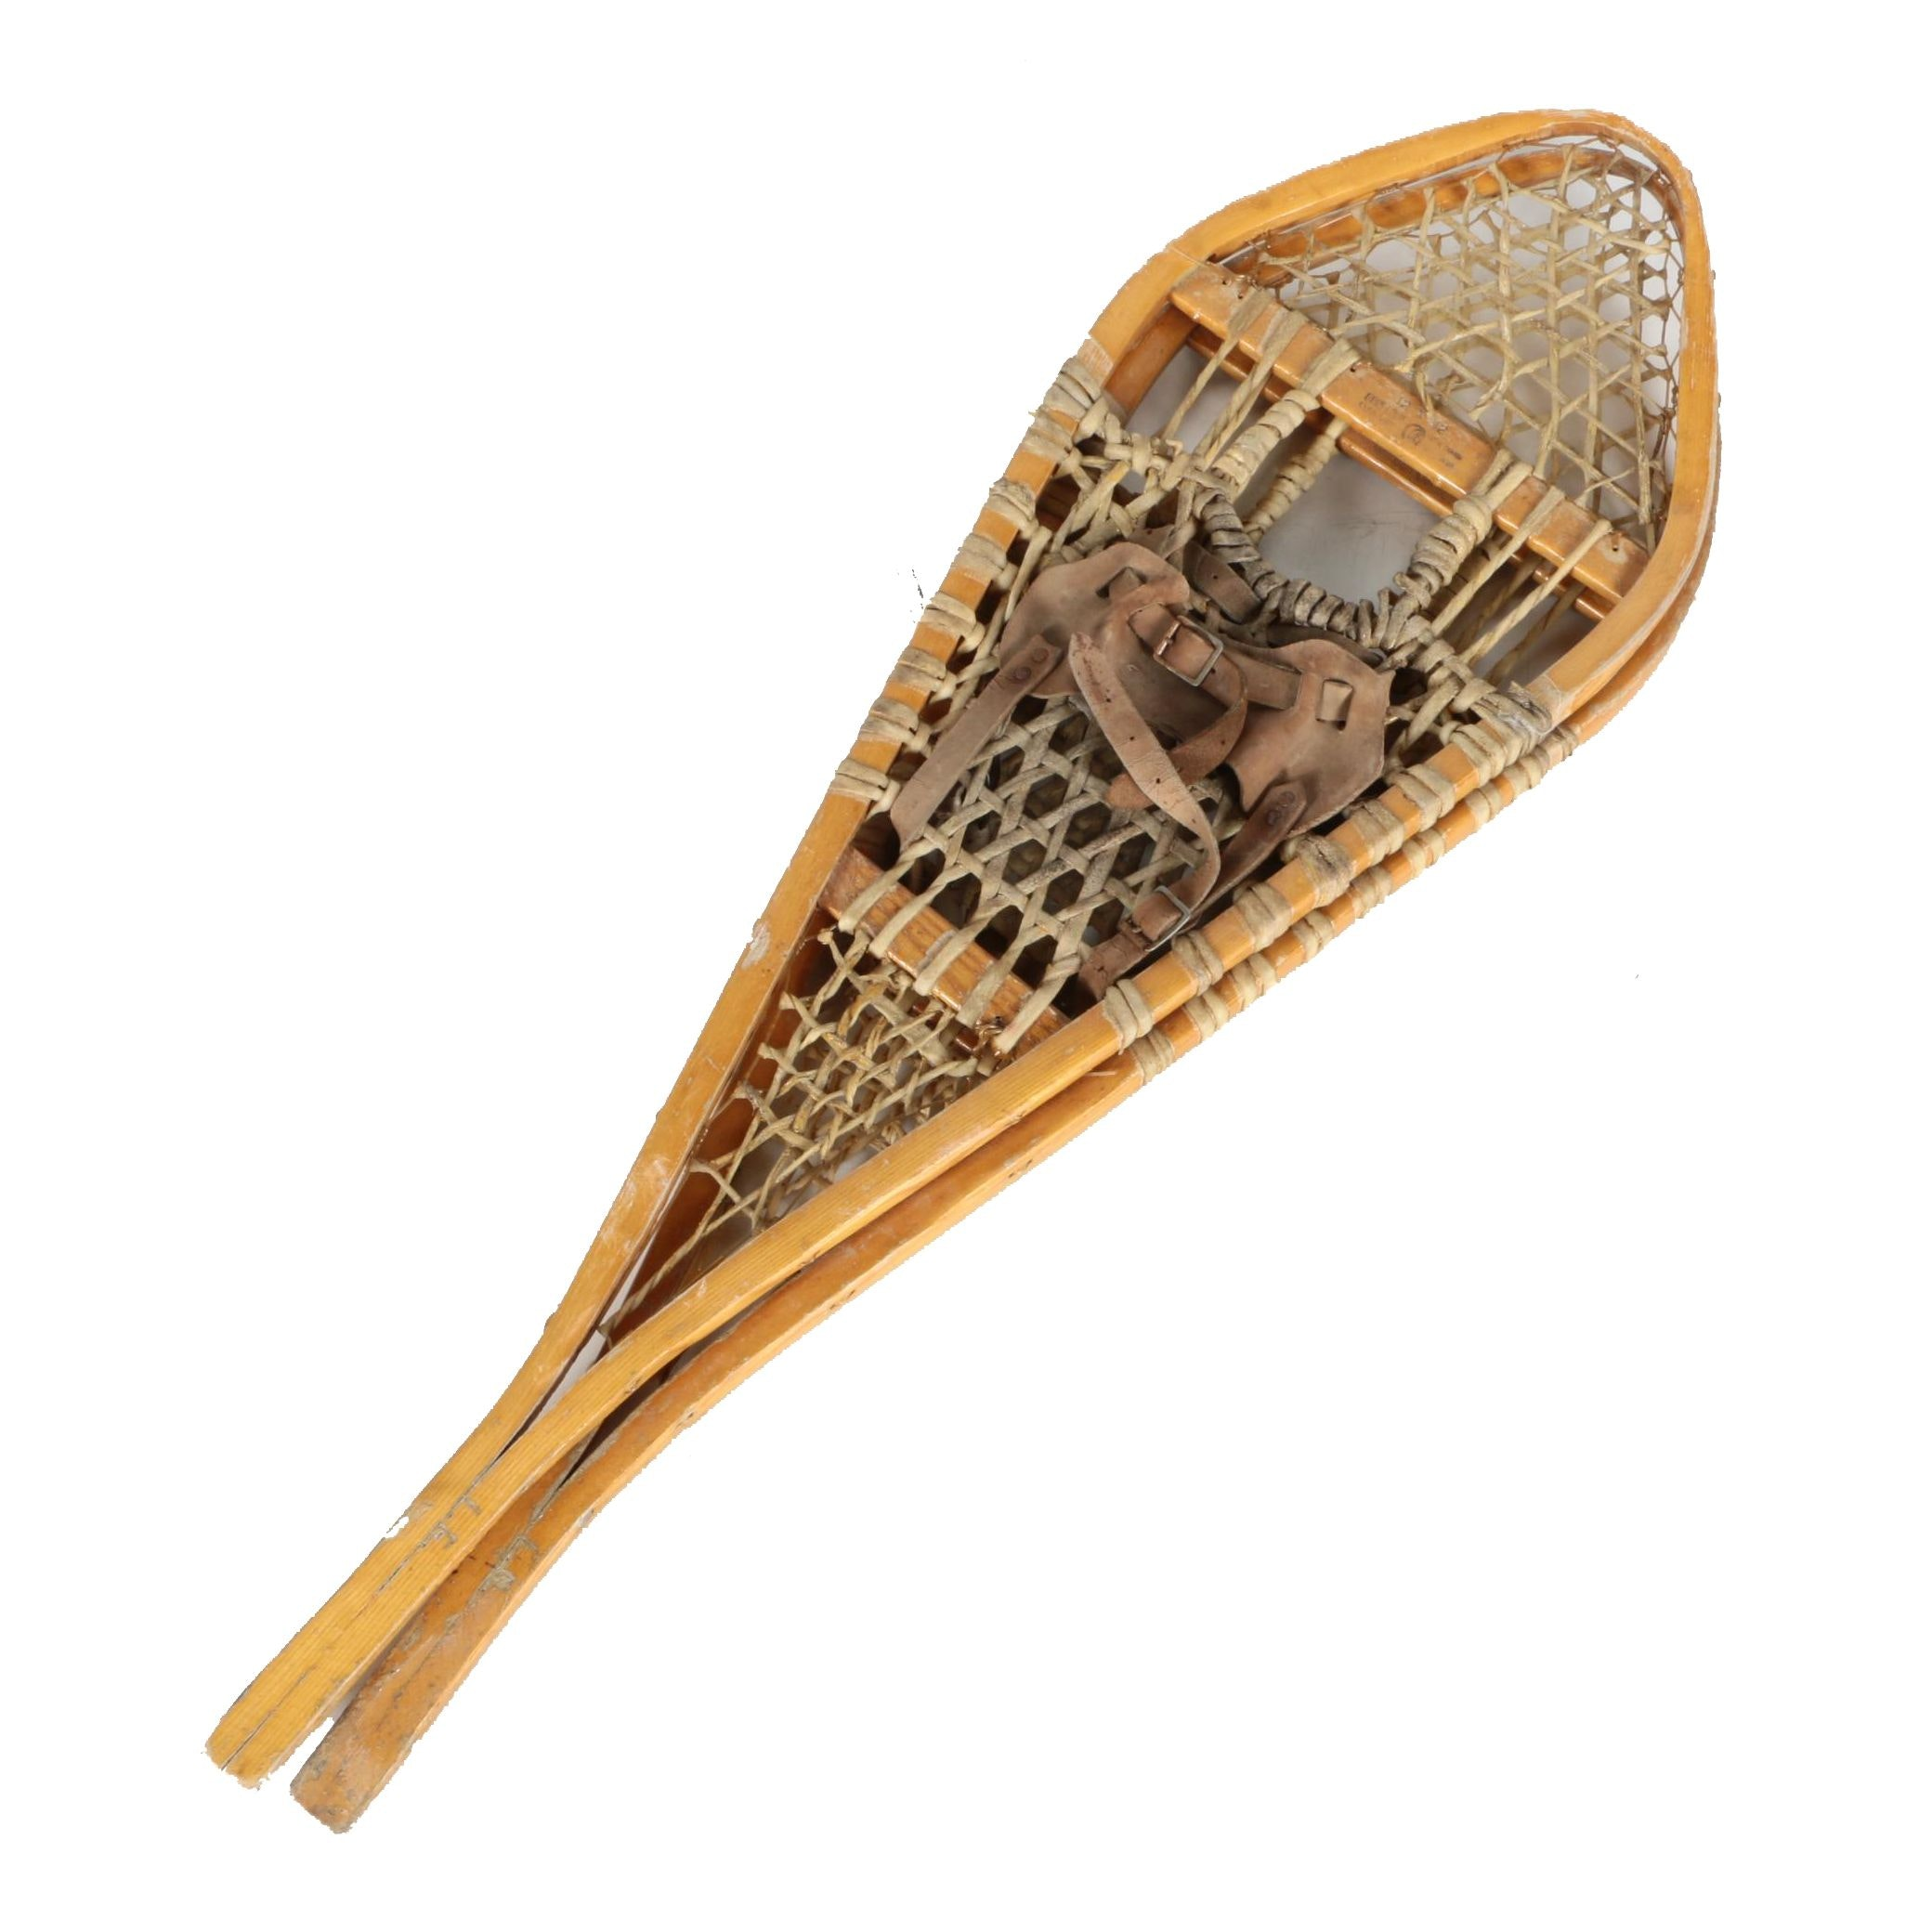 Antique Wicker Snowshoes by Gros Louis